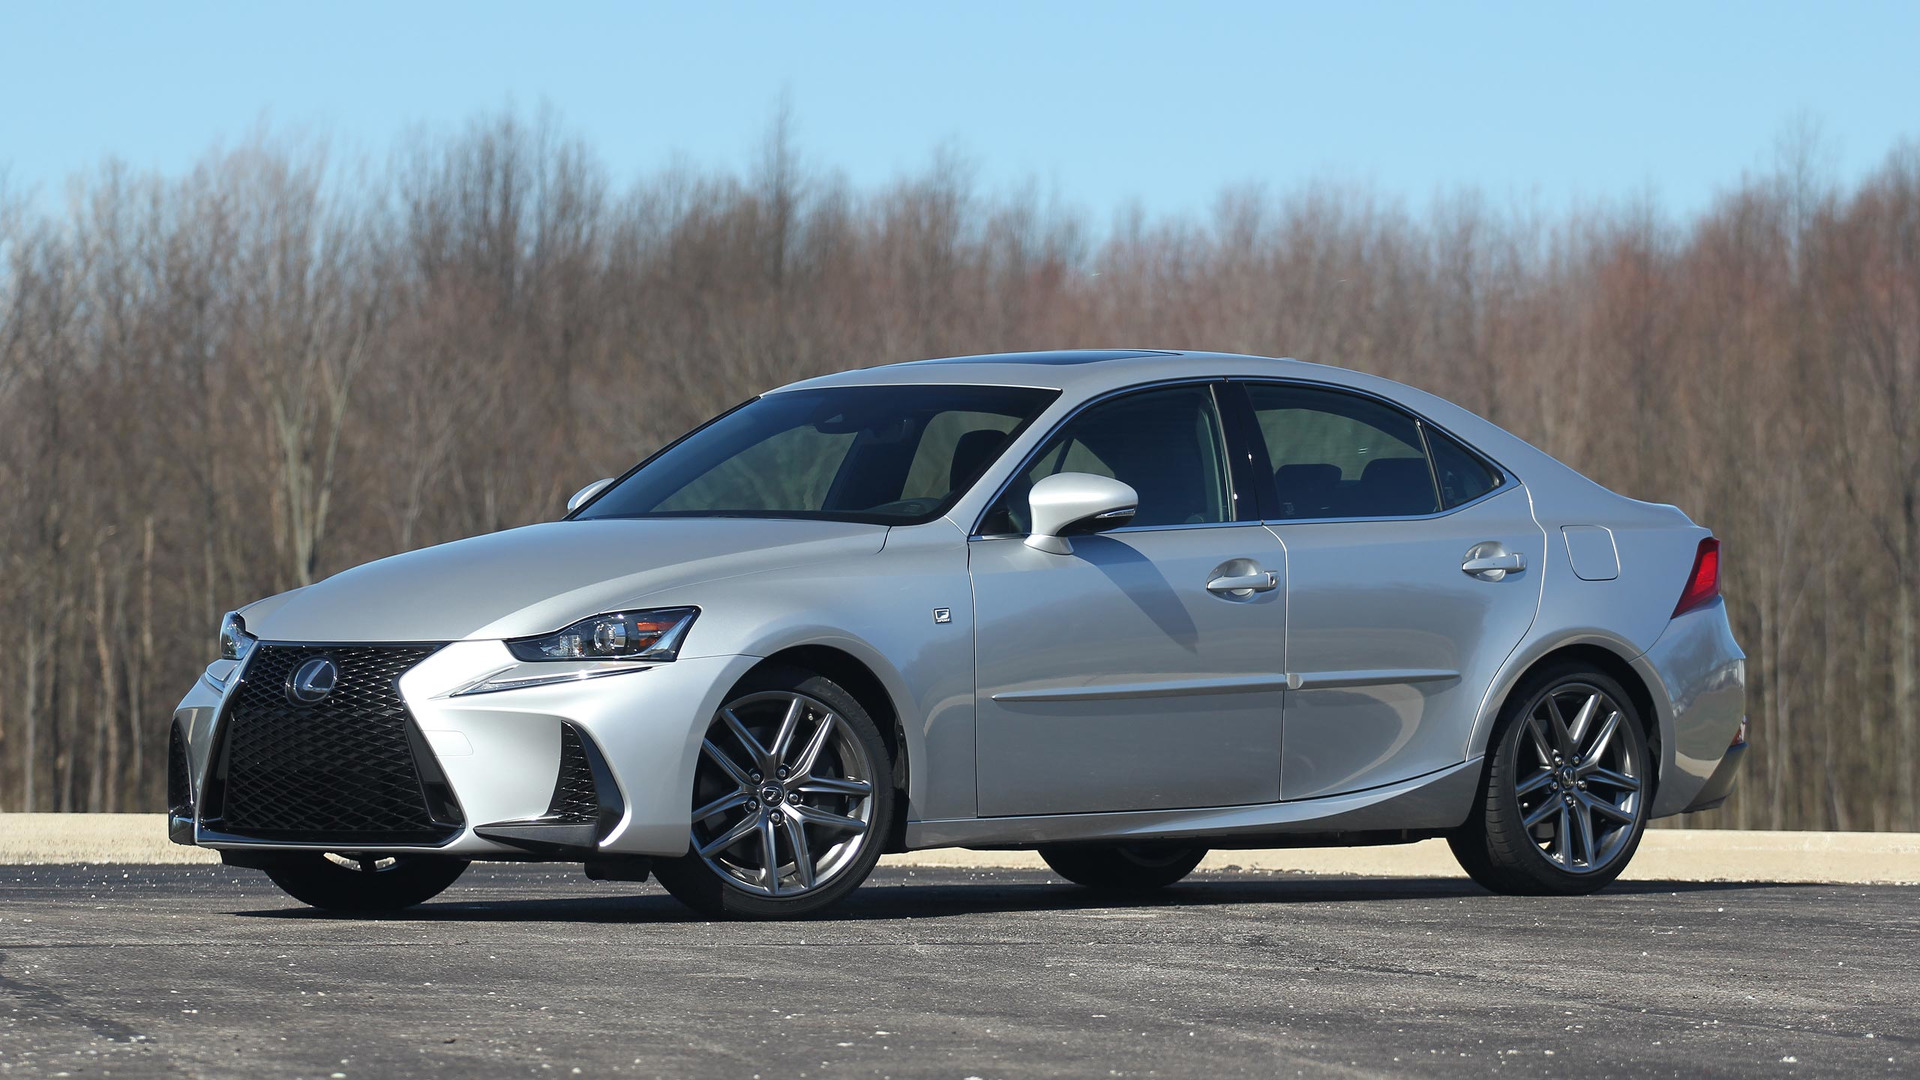 40 All New 2020 Lexus IS350 Price and Review